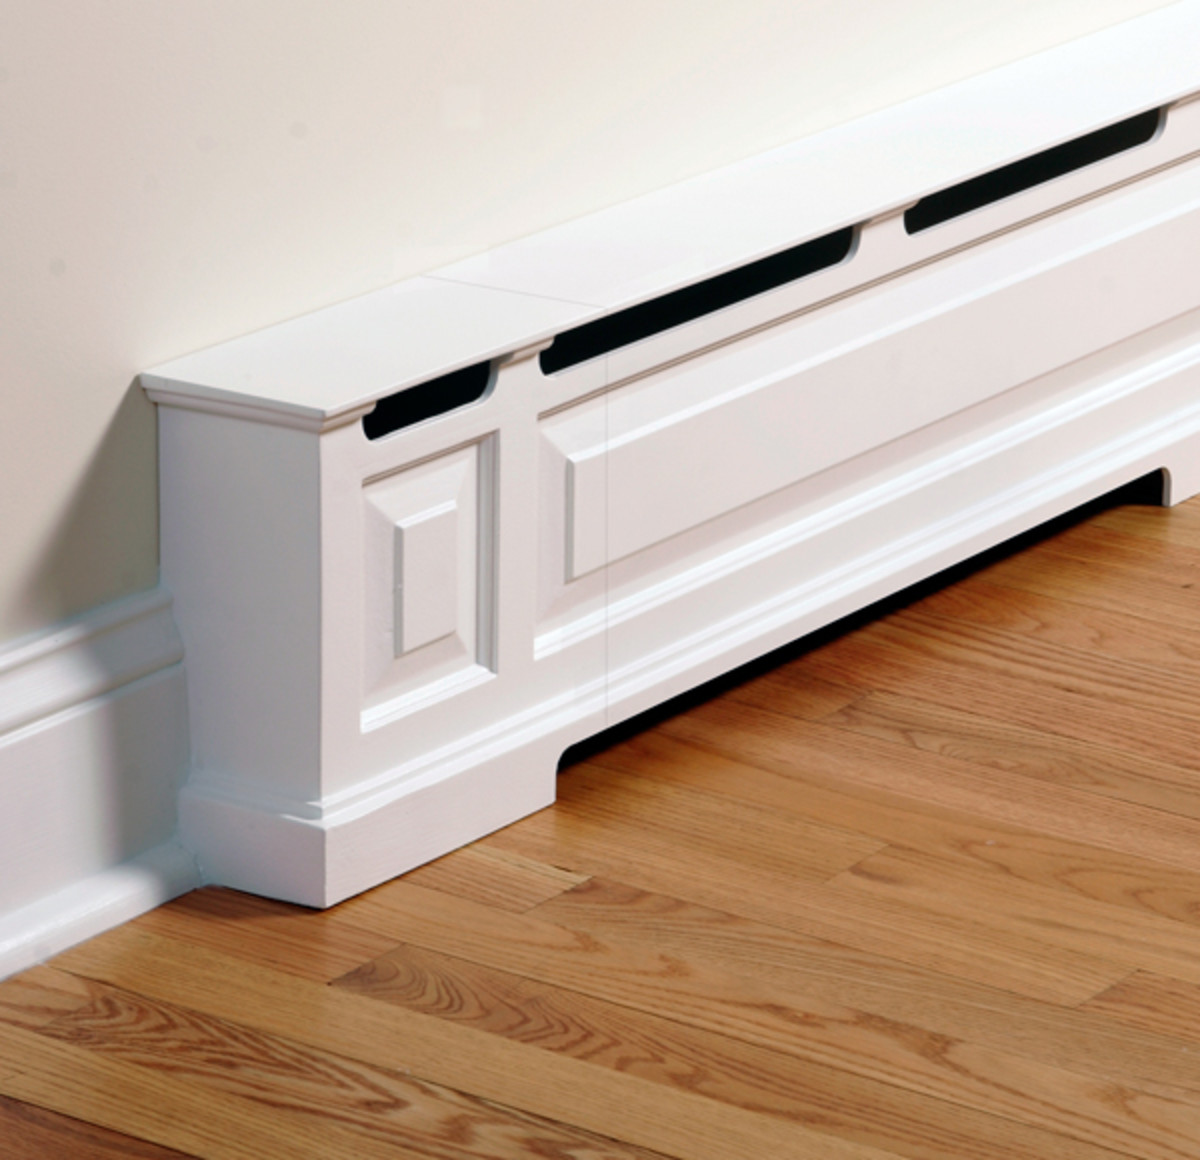 A baseboard heater is turned into room trim with a cover by OverBoards.